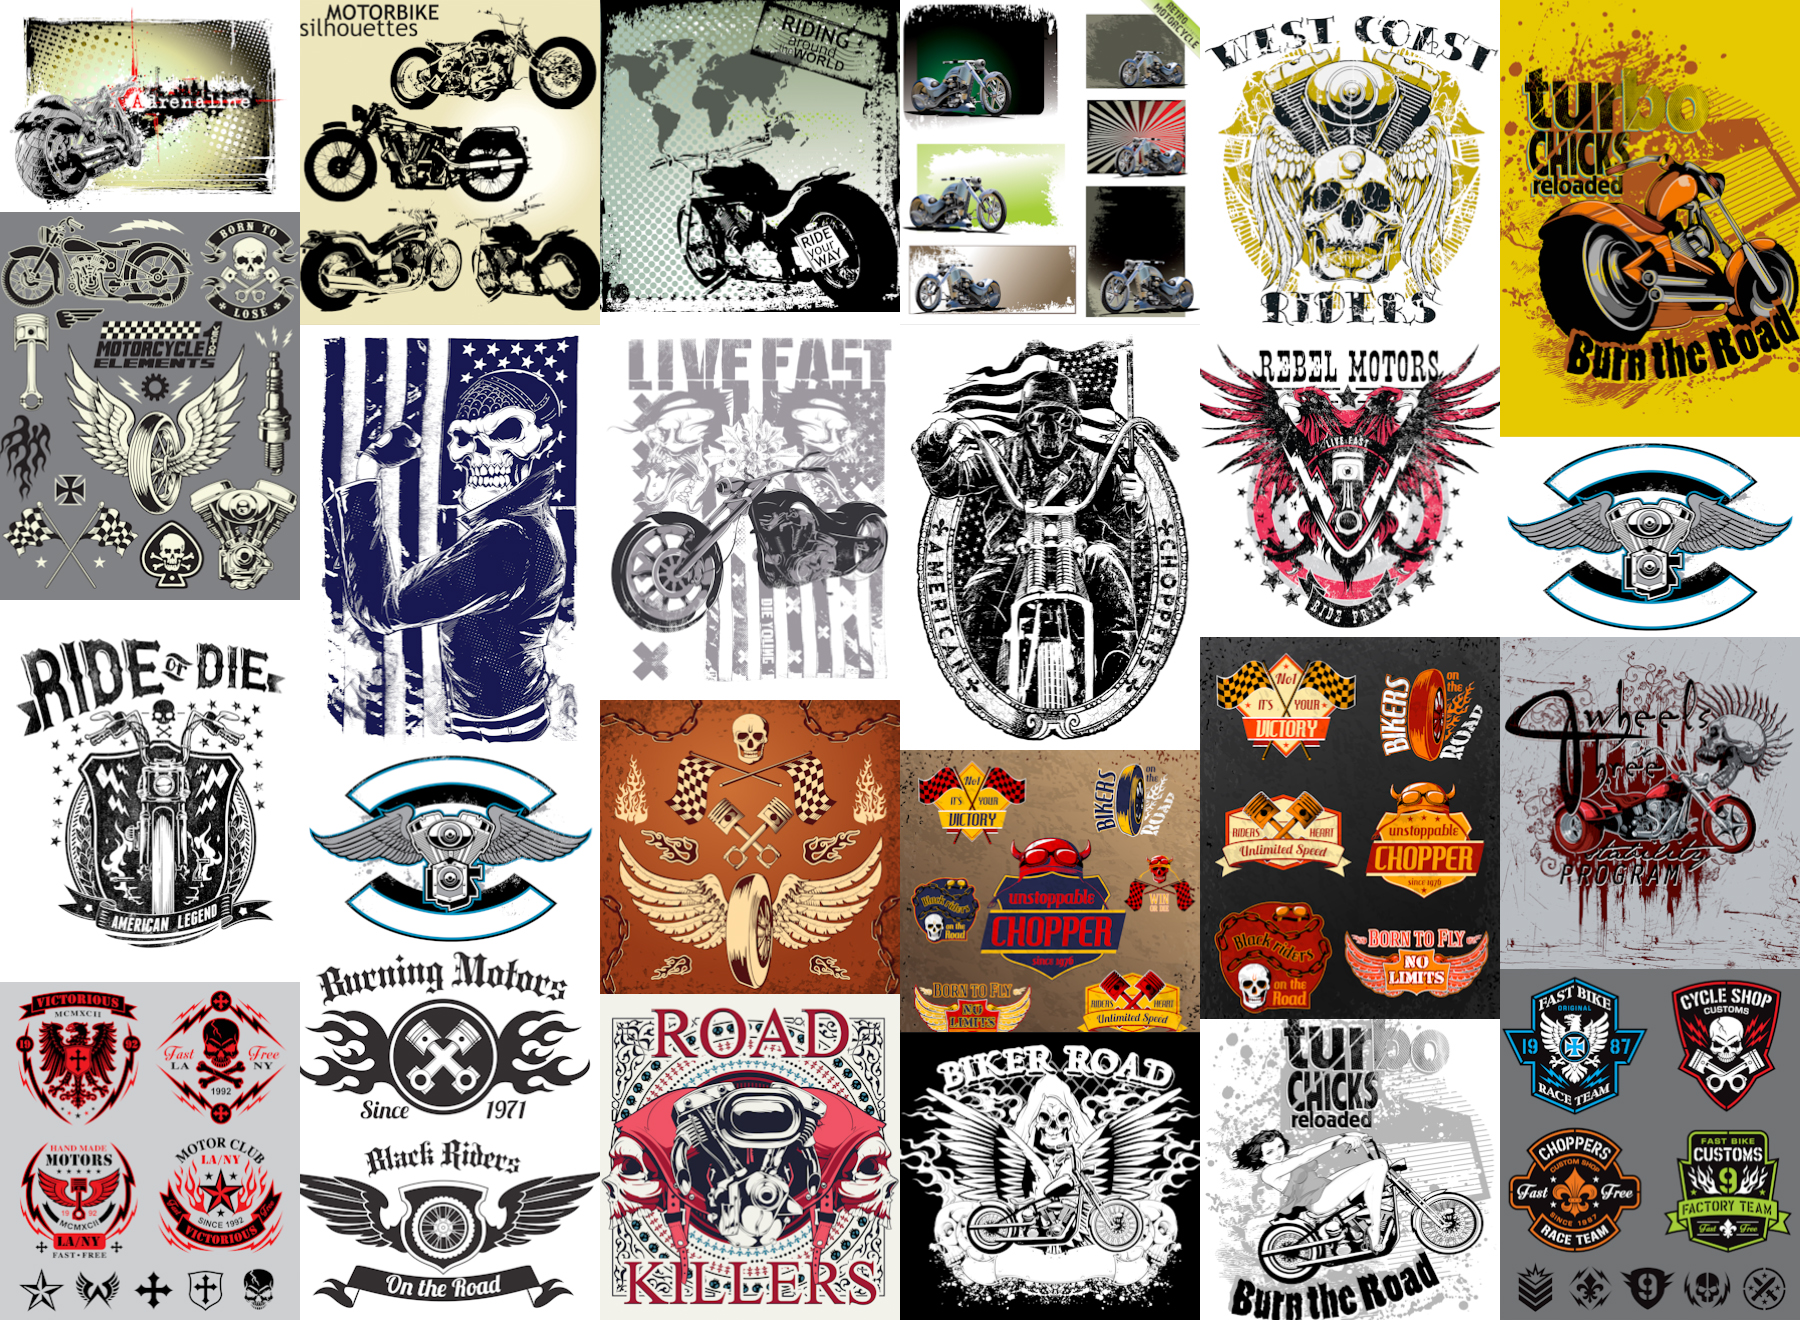 Grunge Bike designs, Bike labels, motorcycle backgrounds or t-shirt designs